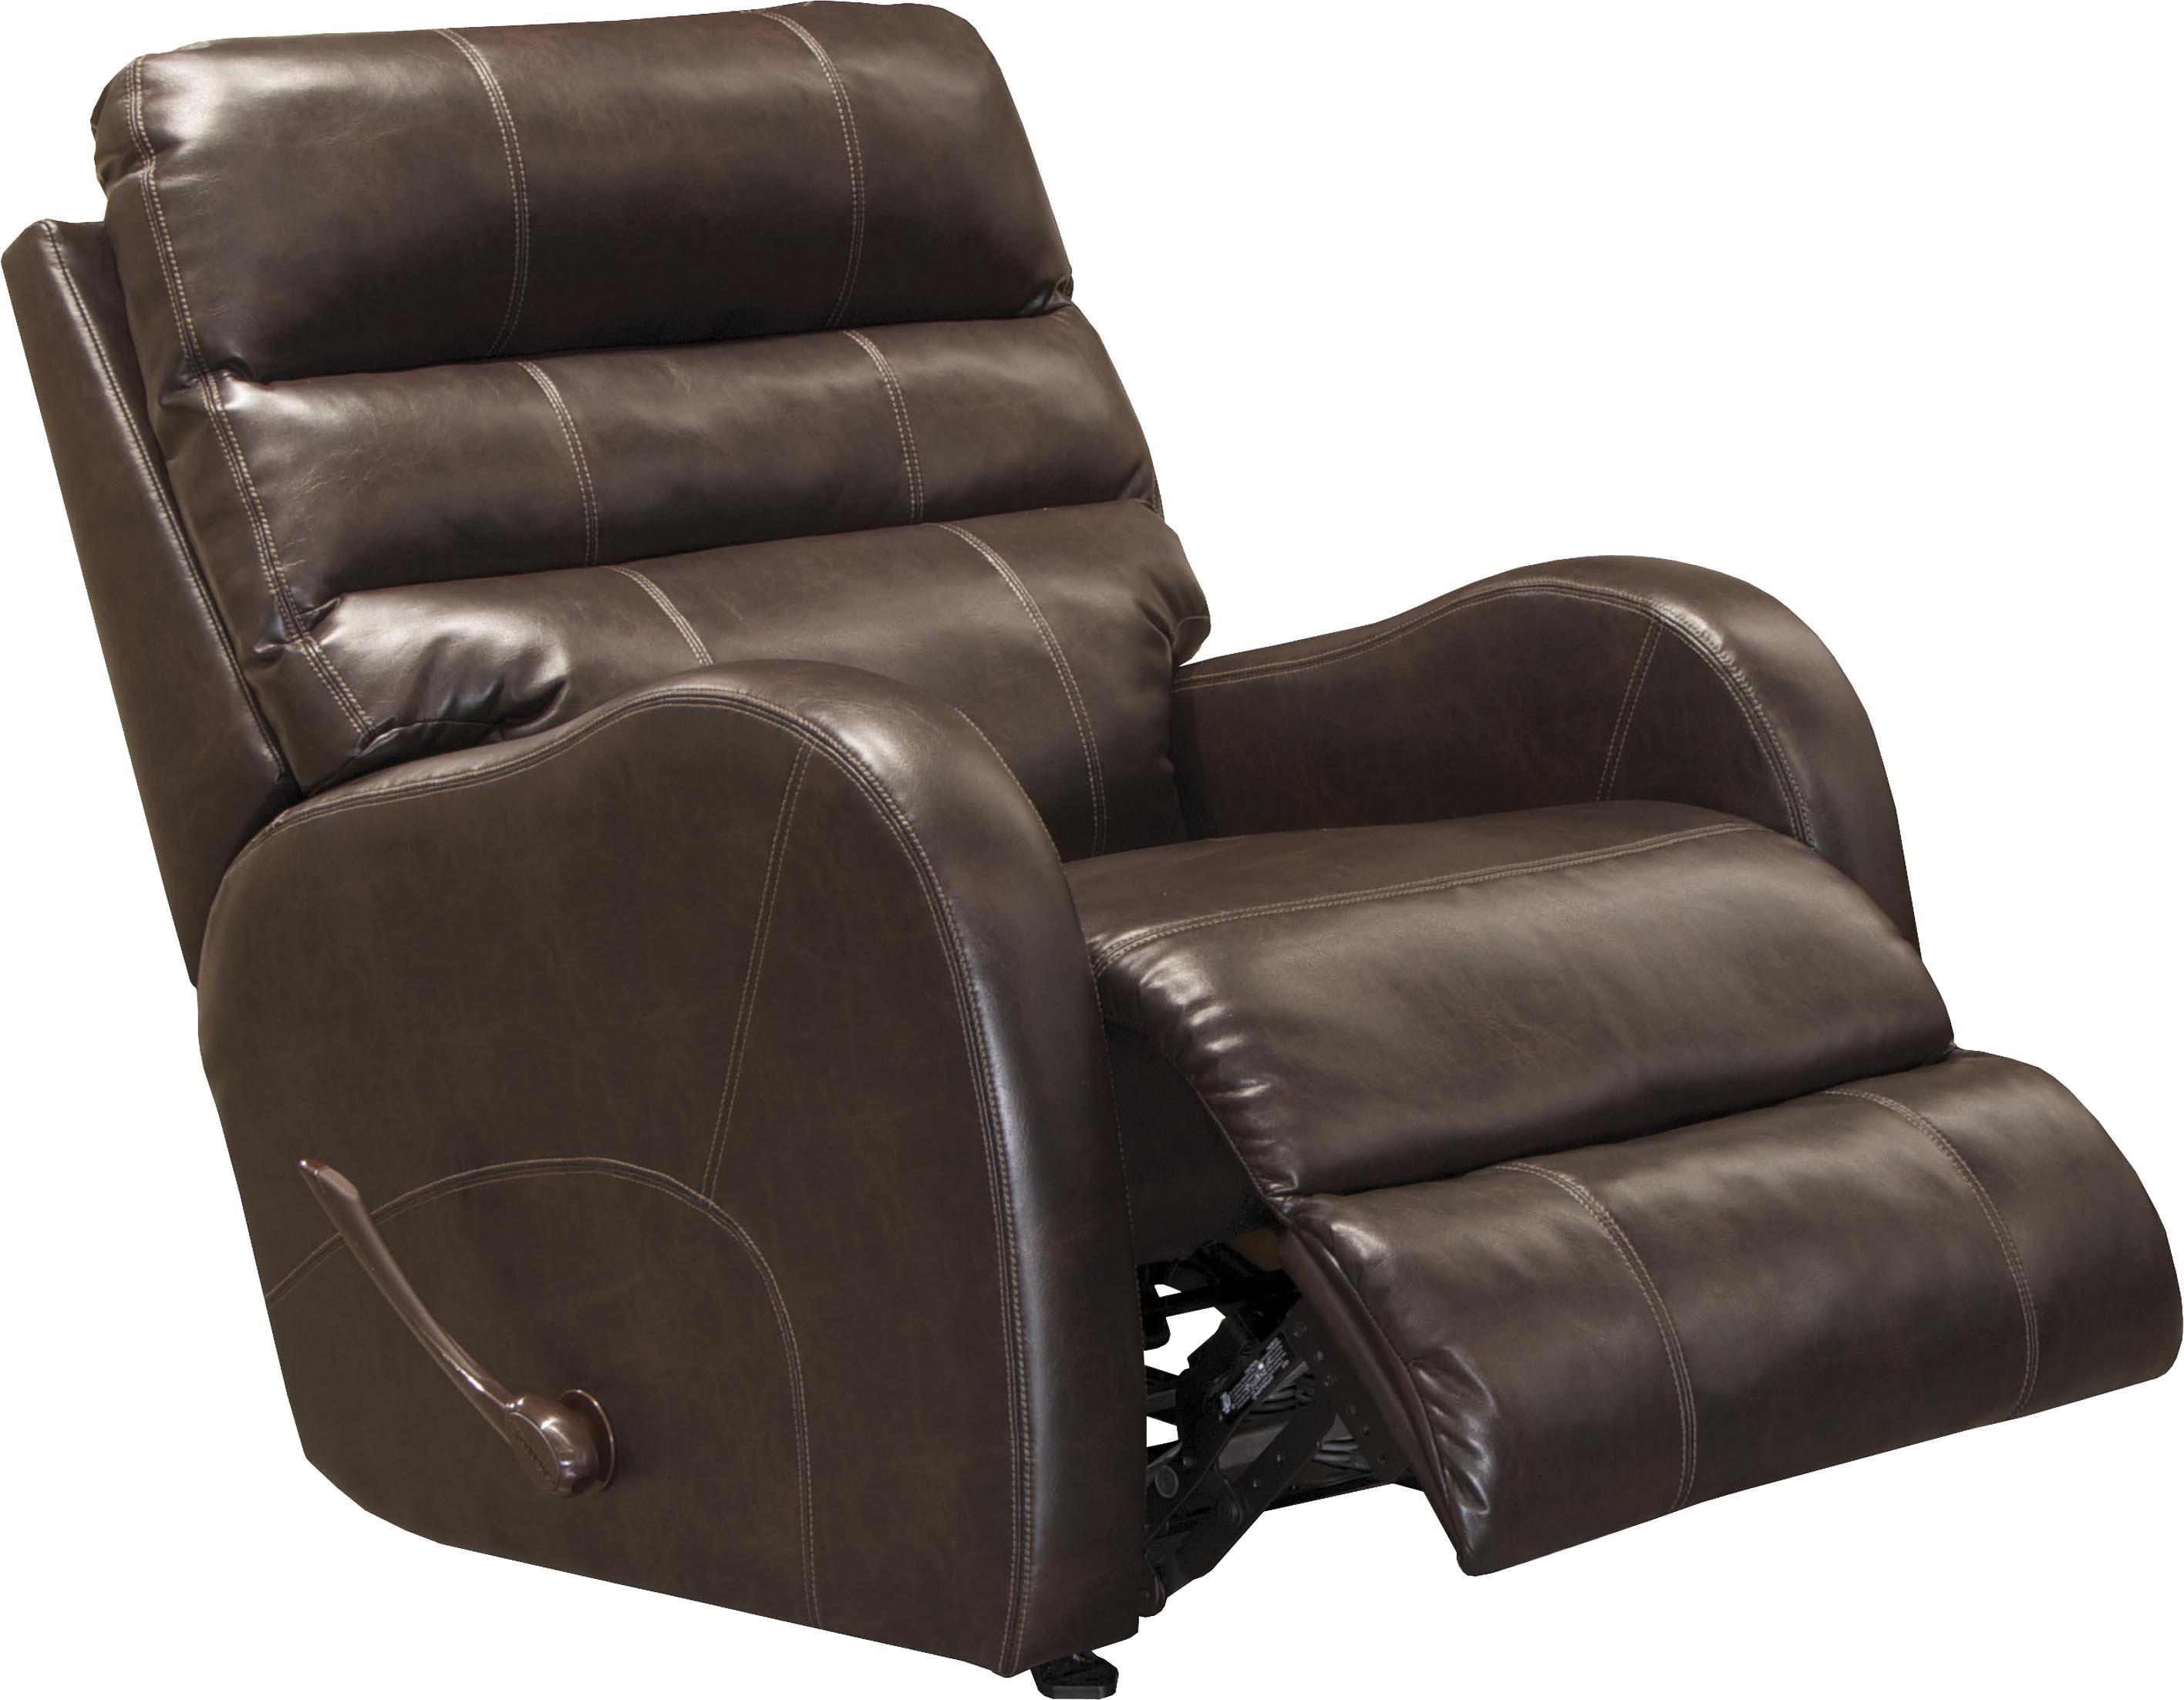 Searcy Power Recliner at Sadler's Home Furnishings